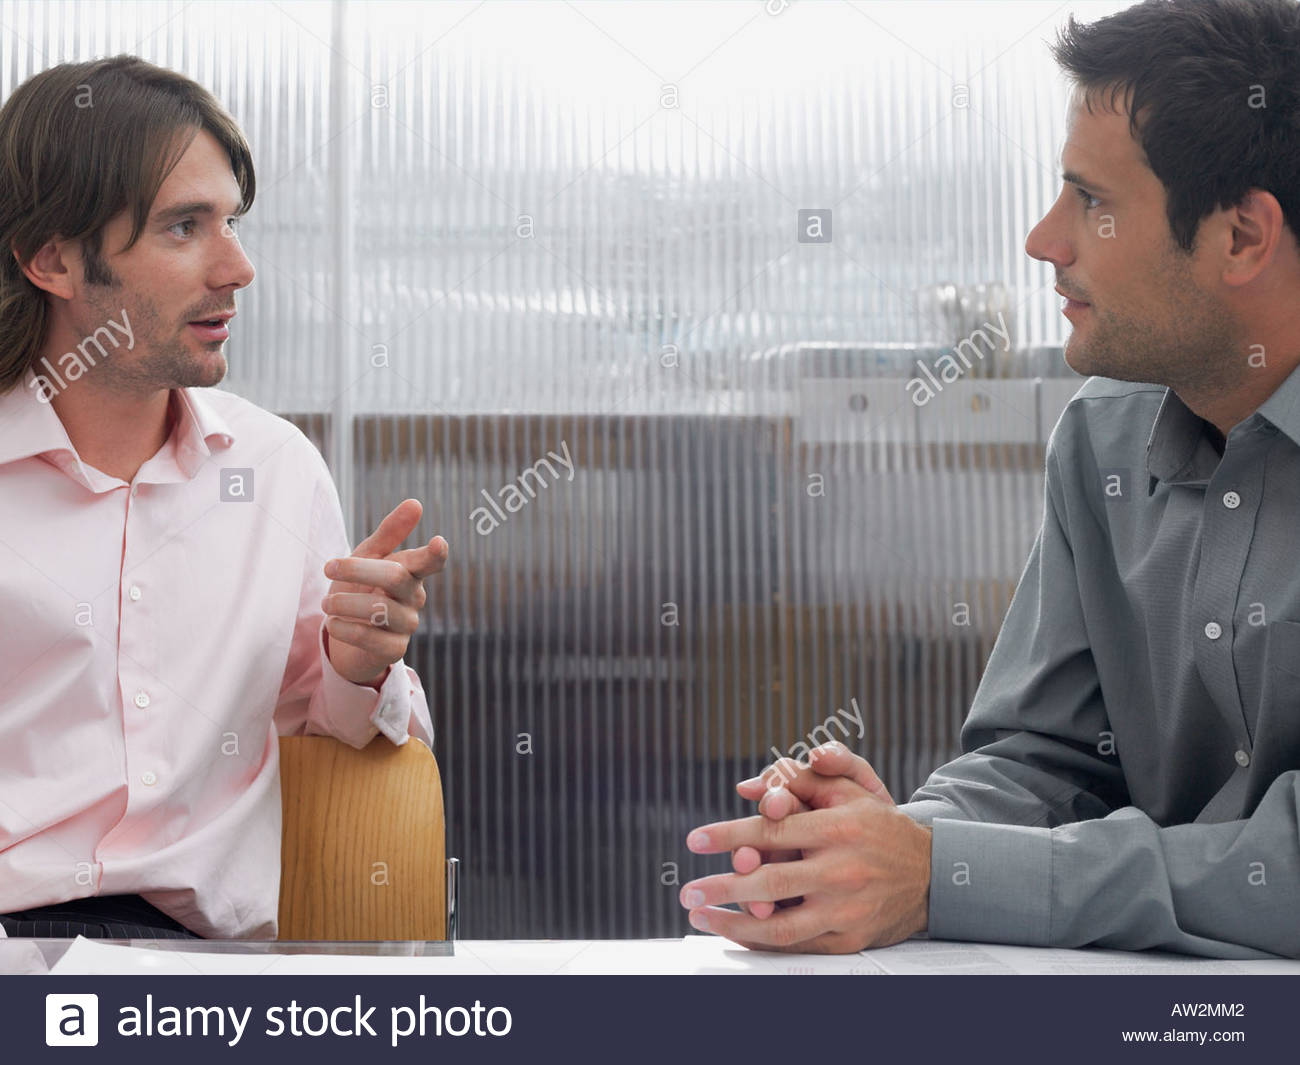 Office workers talking - Stock Image